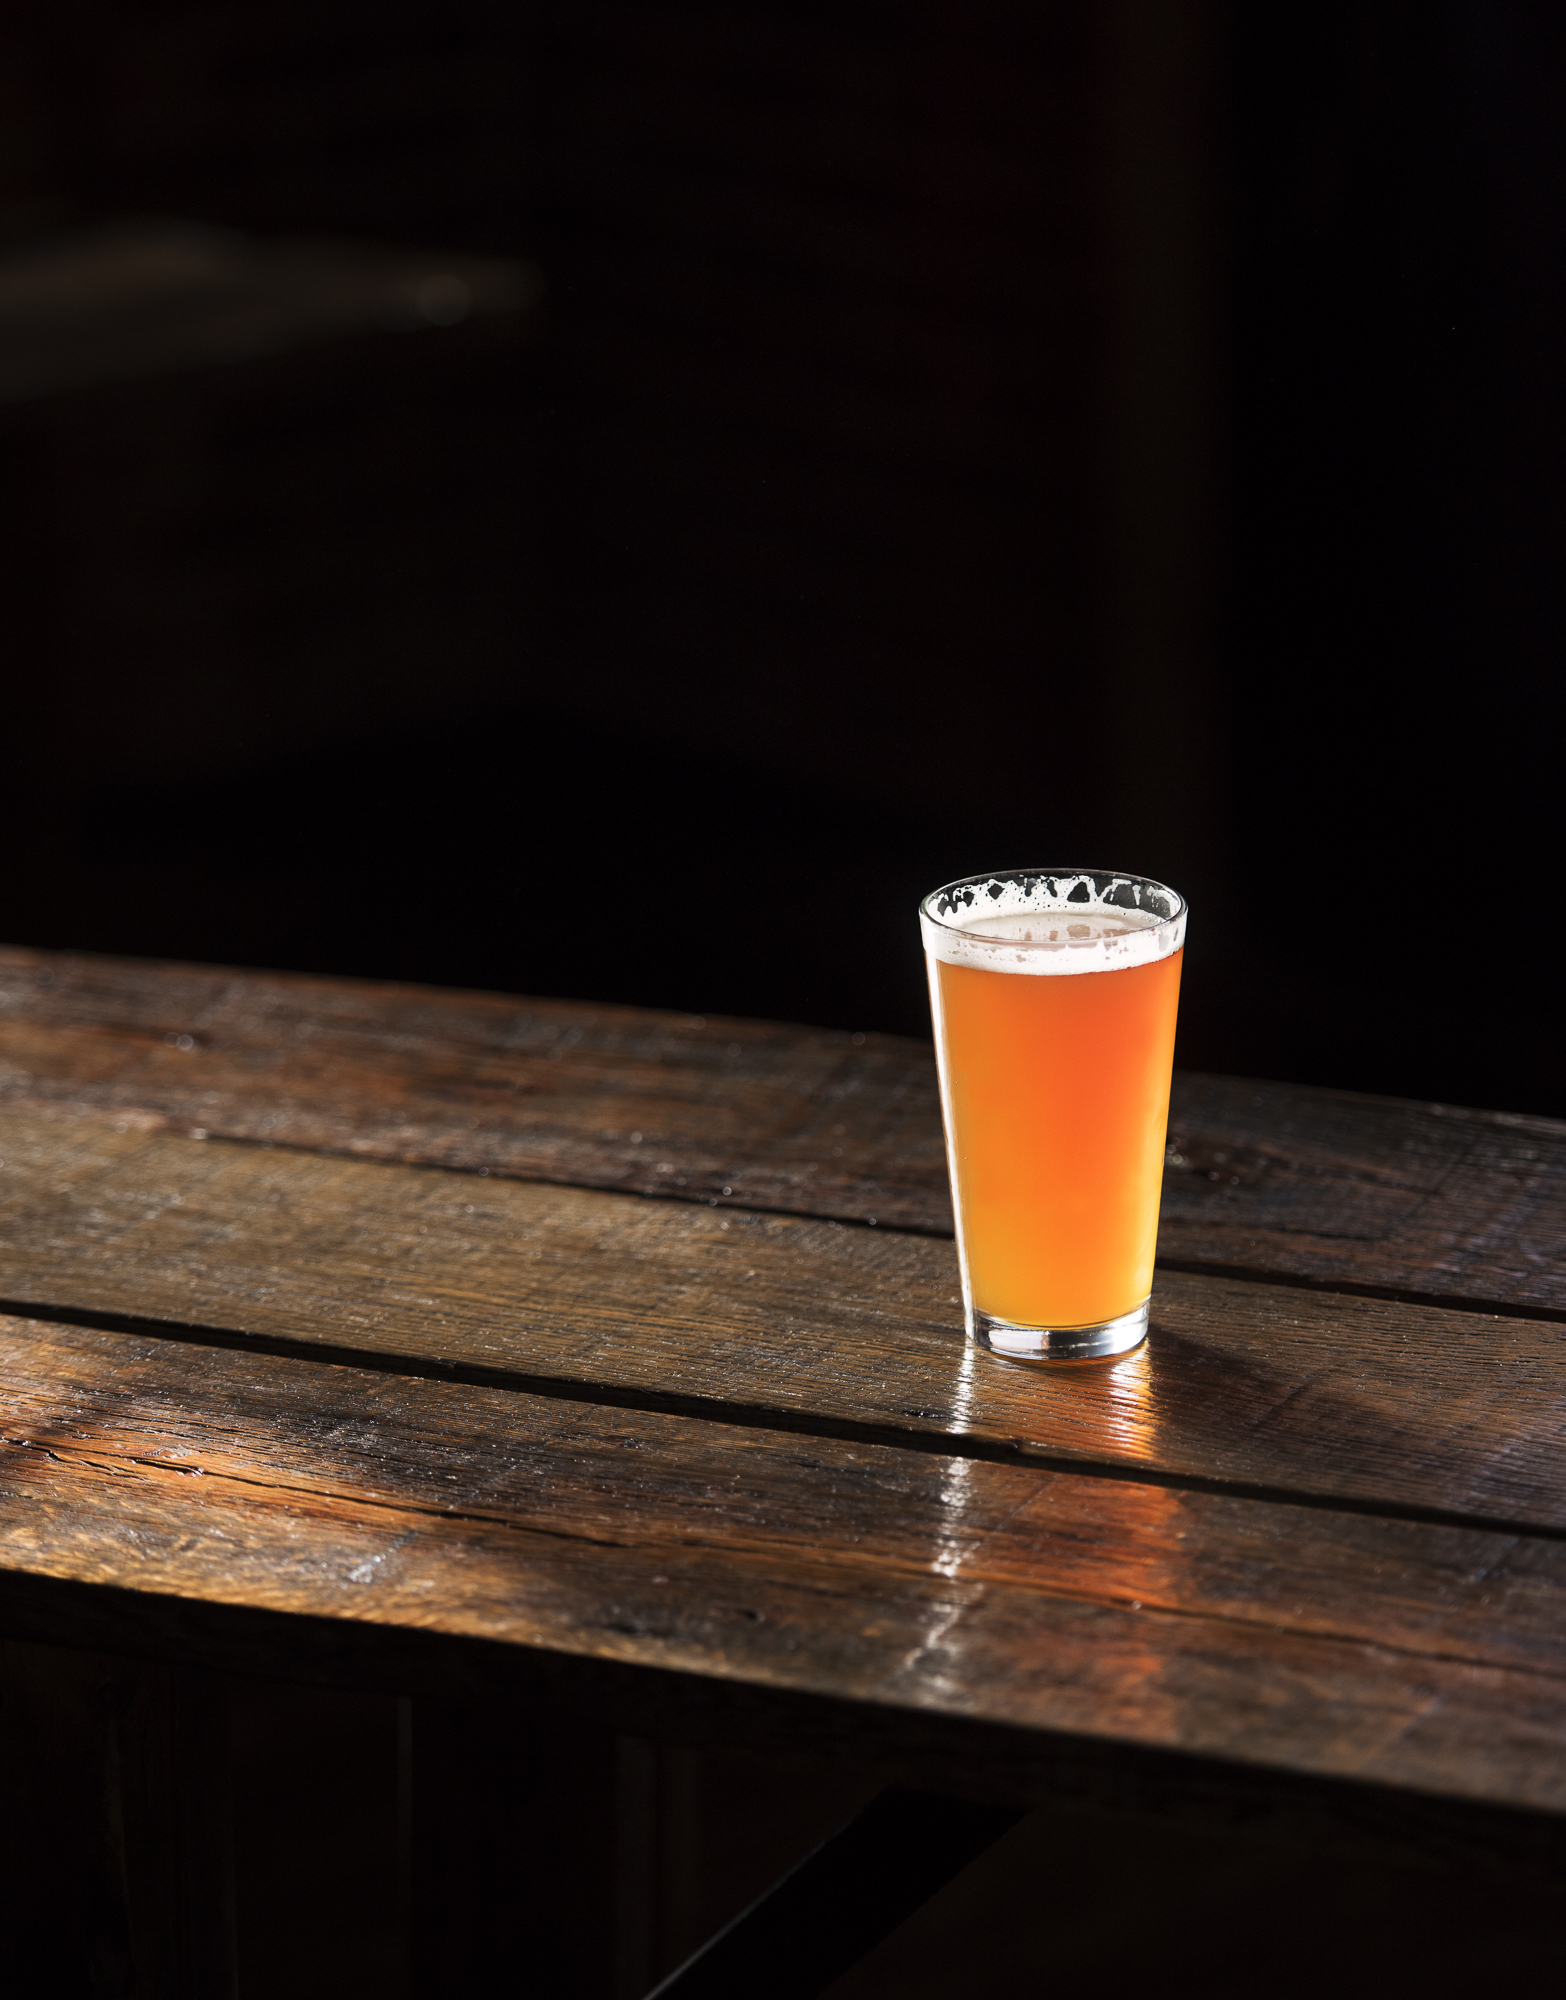 Daught beer at Habitat Brewing & Tavern in Asheville, NC | Photography back Jack Sorokin for The Mountain Xpress Newspaper